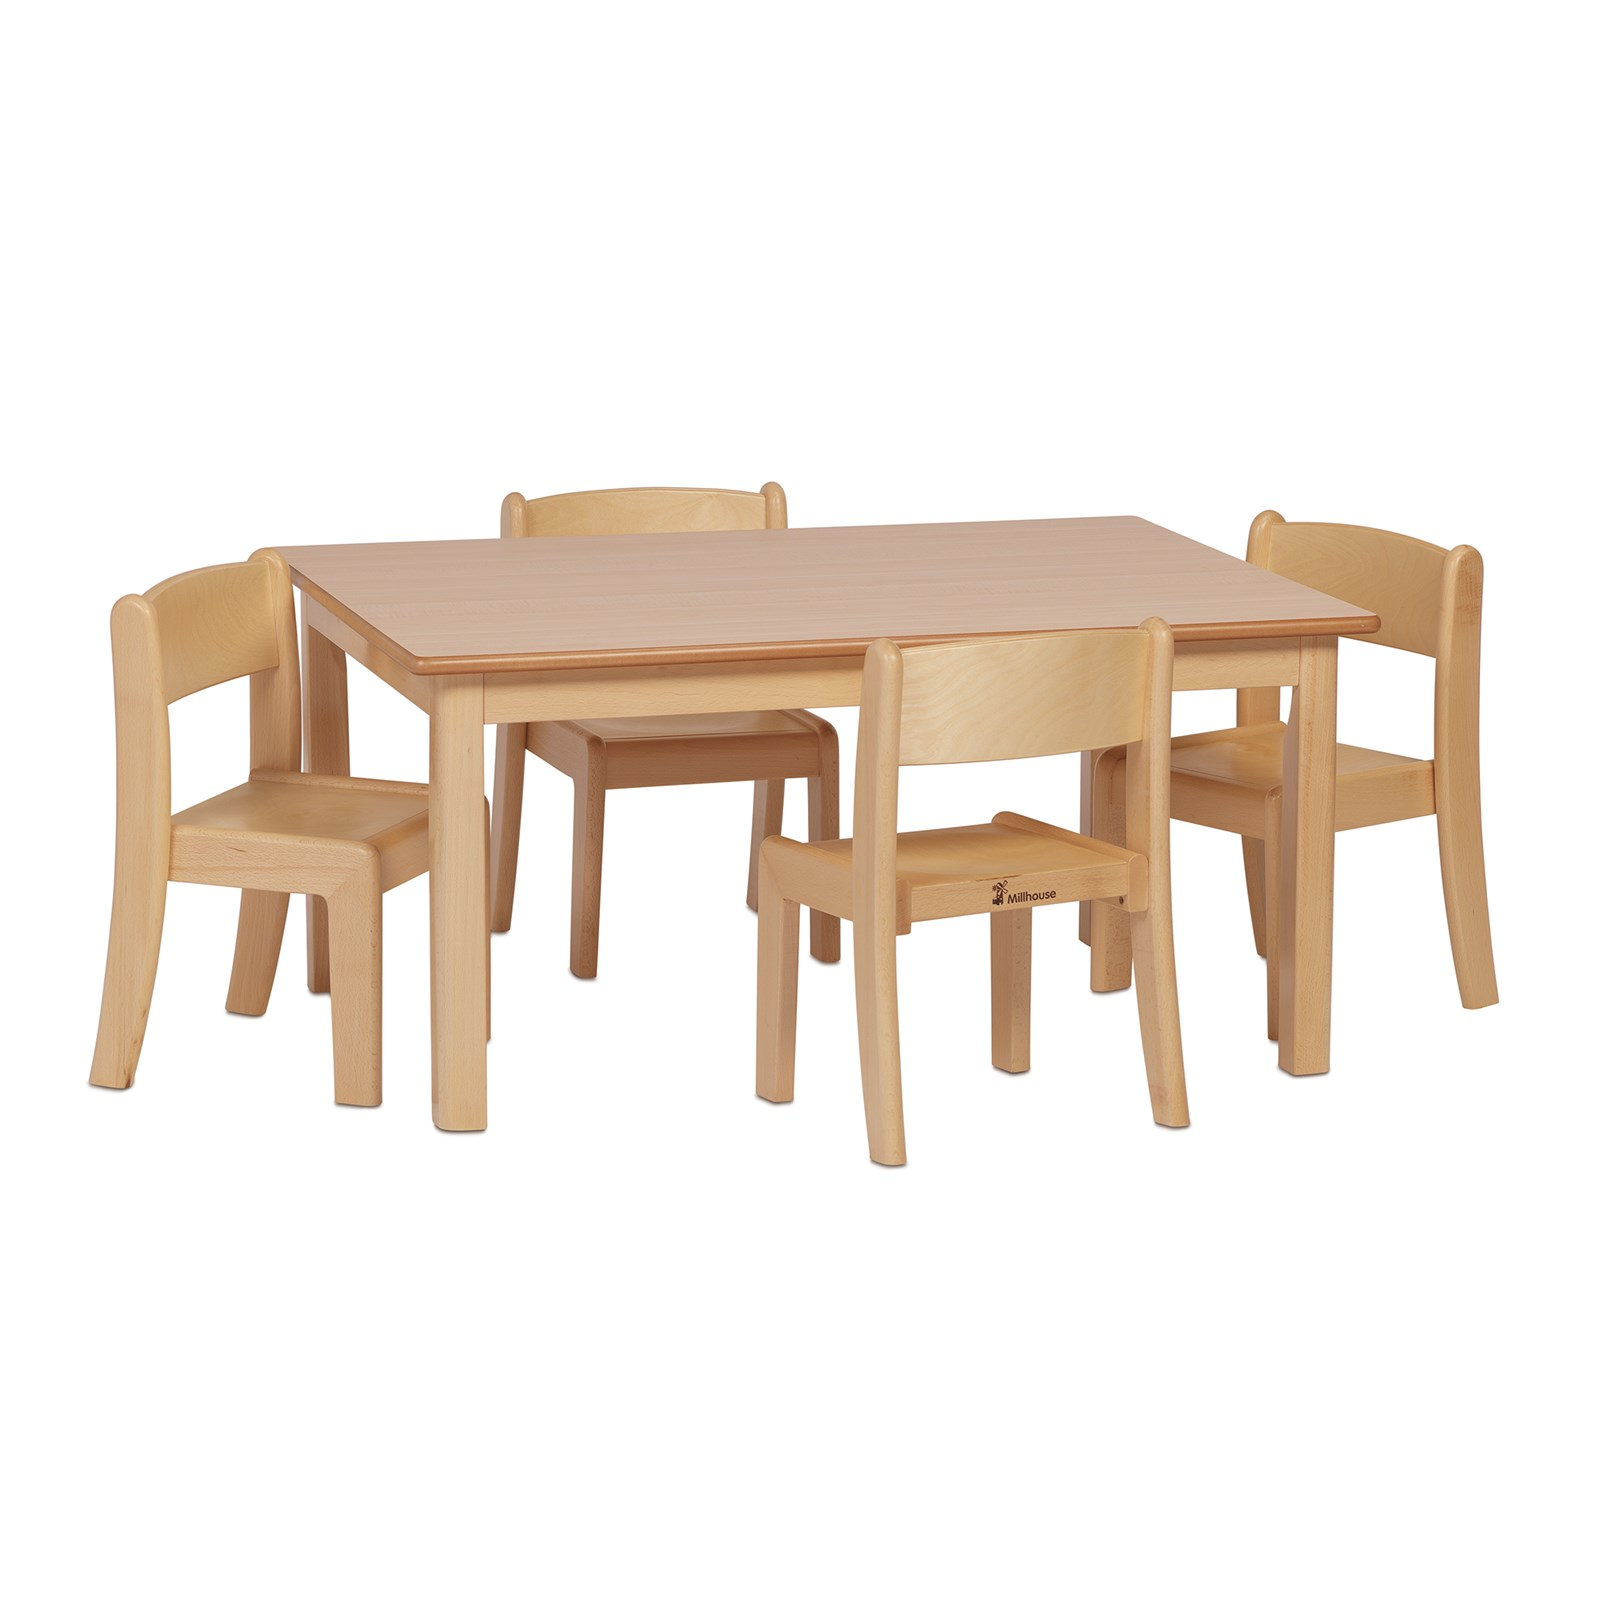 Table & 4 Chairs 21cm